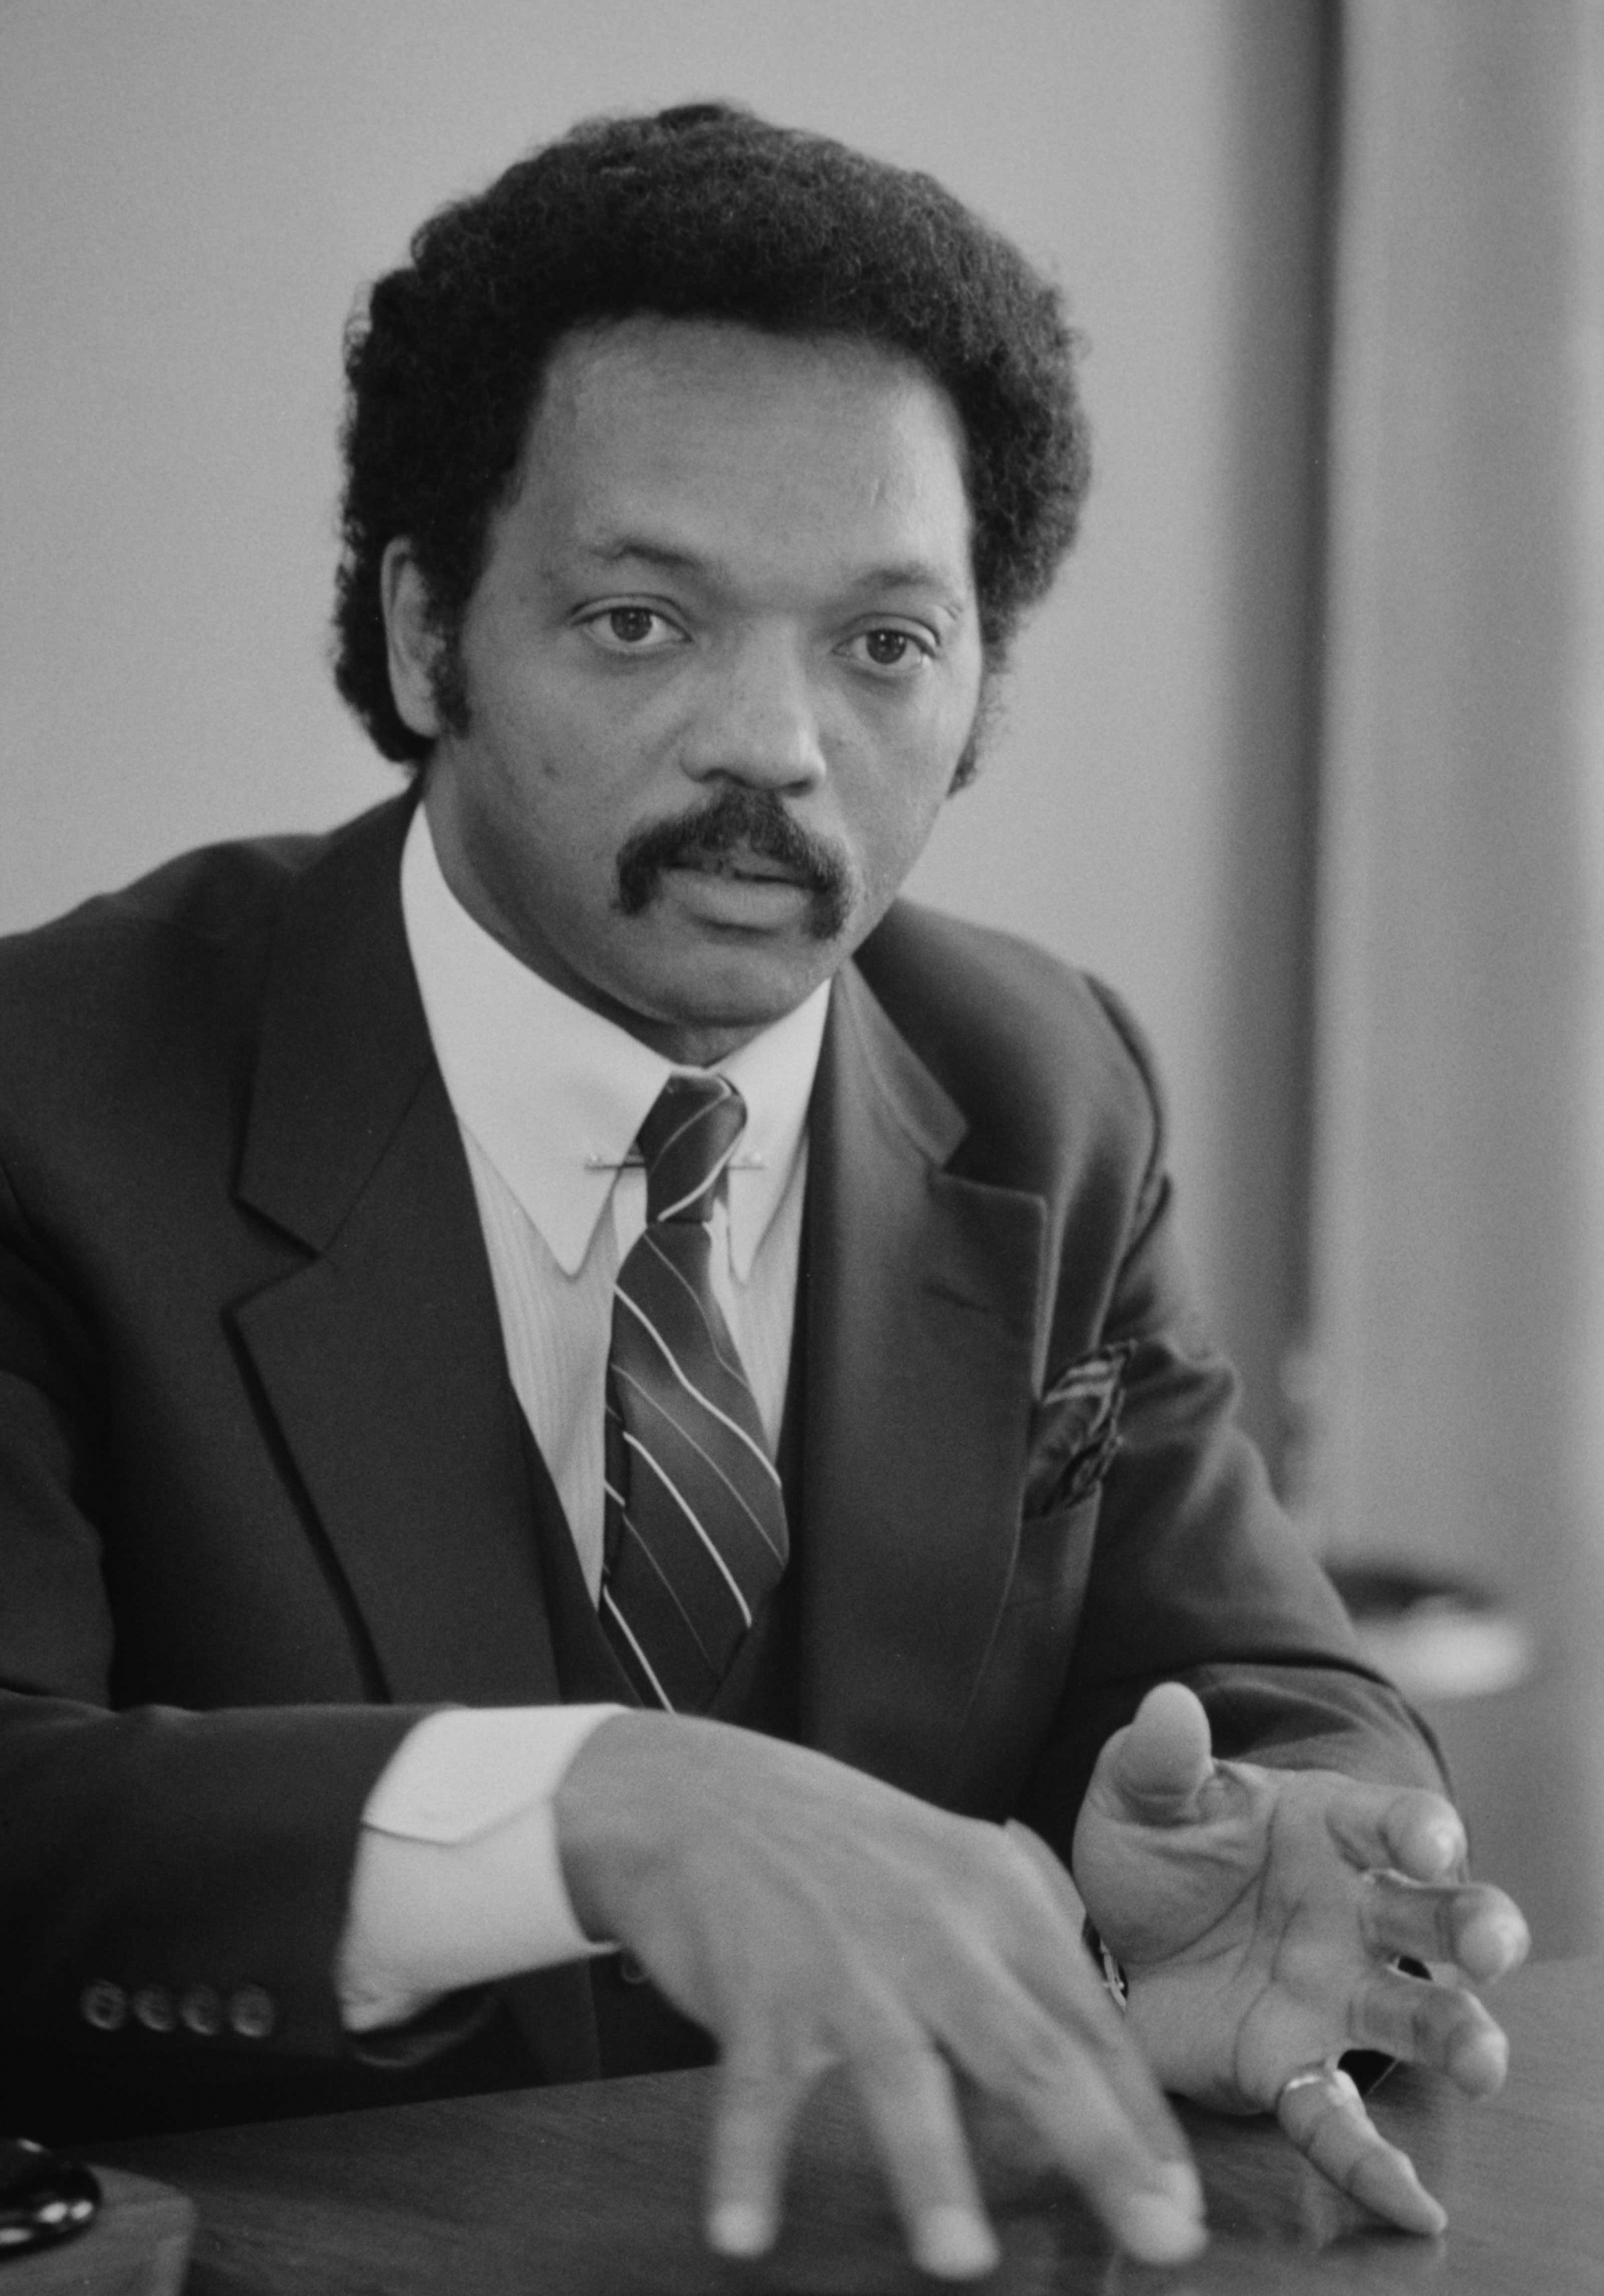 Description Jesse Jackson, half-length portrait of Jackson seated at a